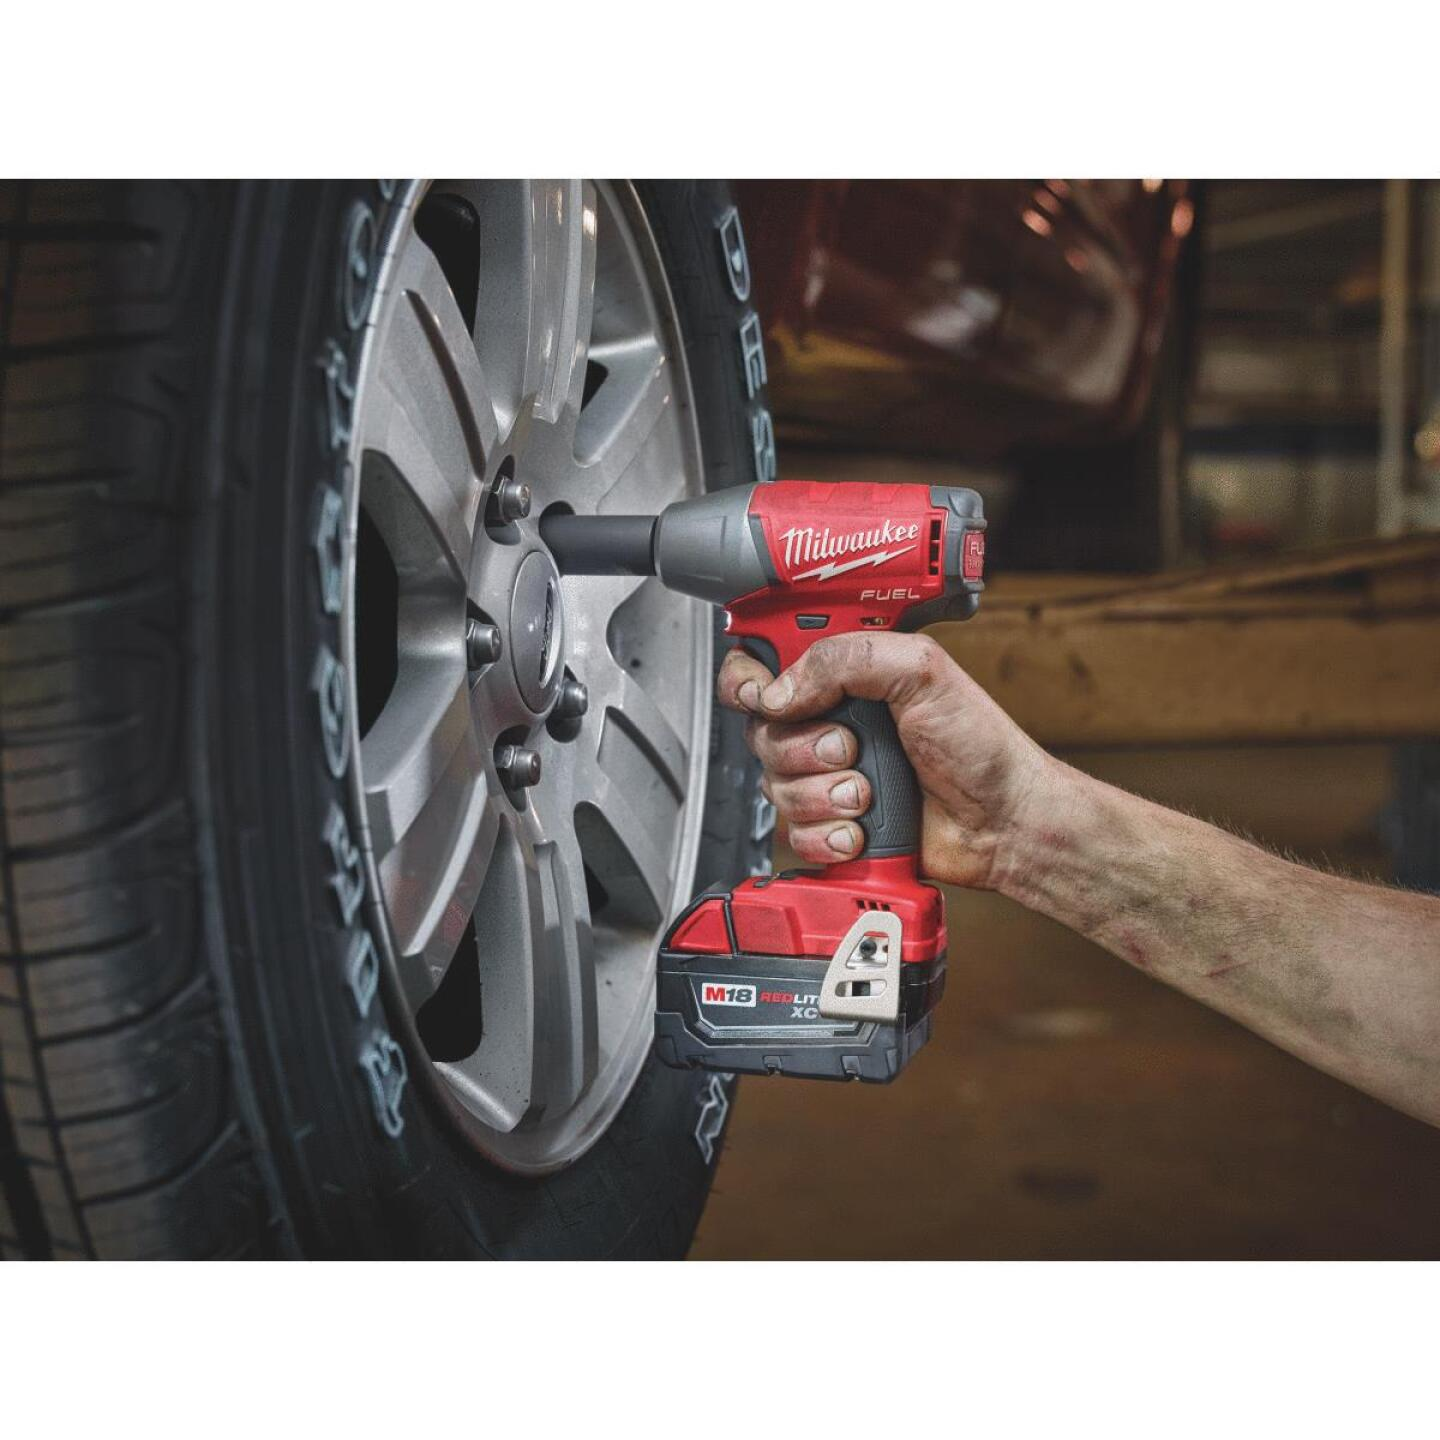 Milwaukee M18 FUEL 18 Volt Lithium-Ion Brushless 3/8 In. Compact Cordless Impact Wrench with Friction Ring Kit Image 2